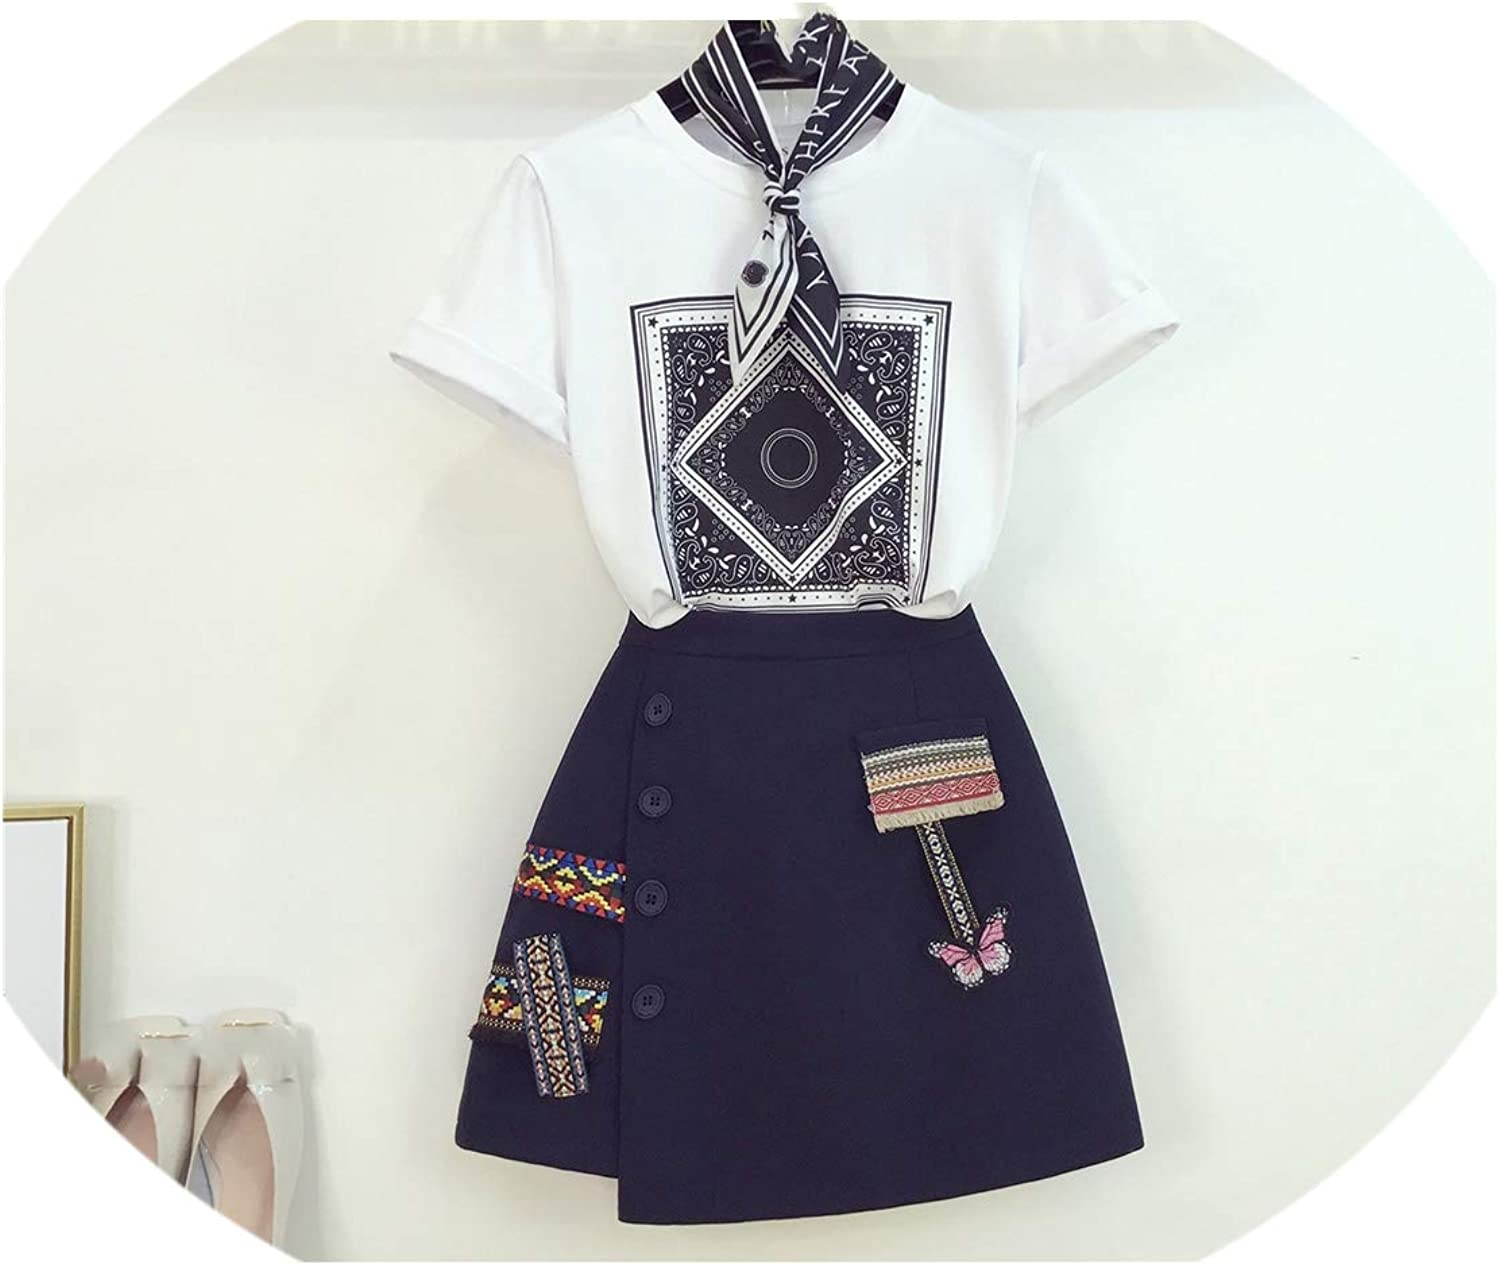 Enjoypeak Summer Ladies Mini Skirts Suit New Print TShirt with Embroidery Skirt Goddess Two Piece Women's